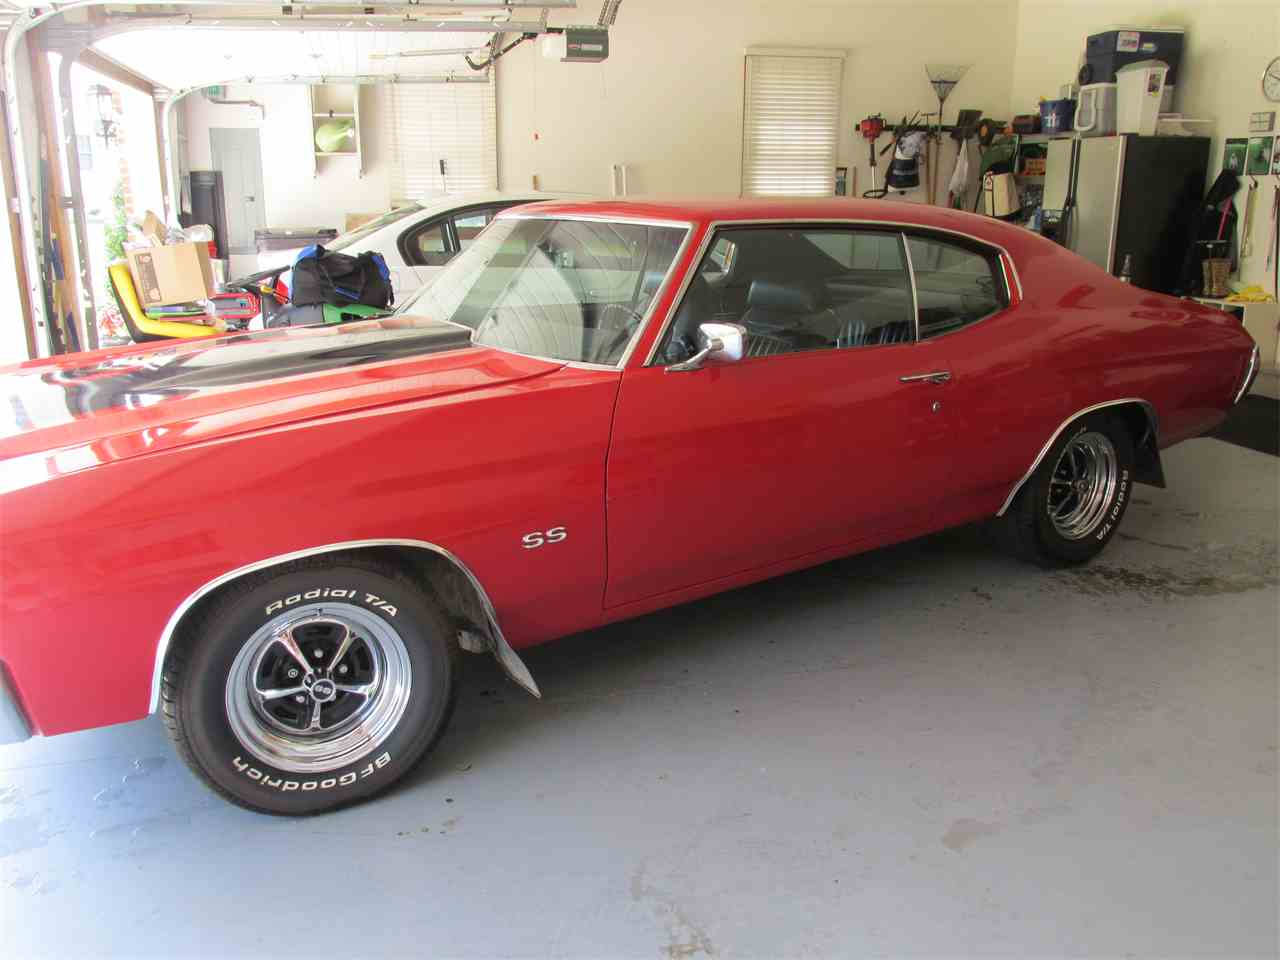 Large Picture of Classic '71 Chevrolet Chevelle SS located in Godfrey Illinois - $26,500.00 Offered by a Private Seller - JRT1